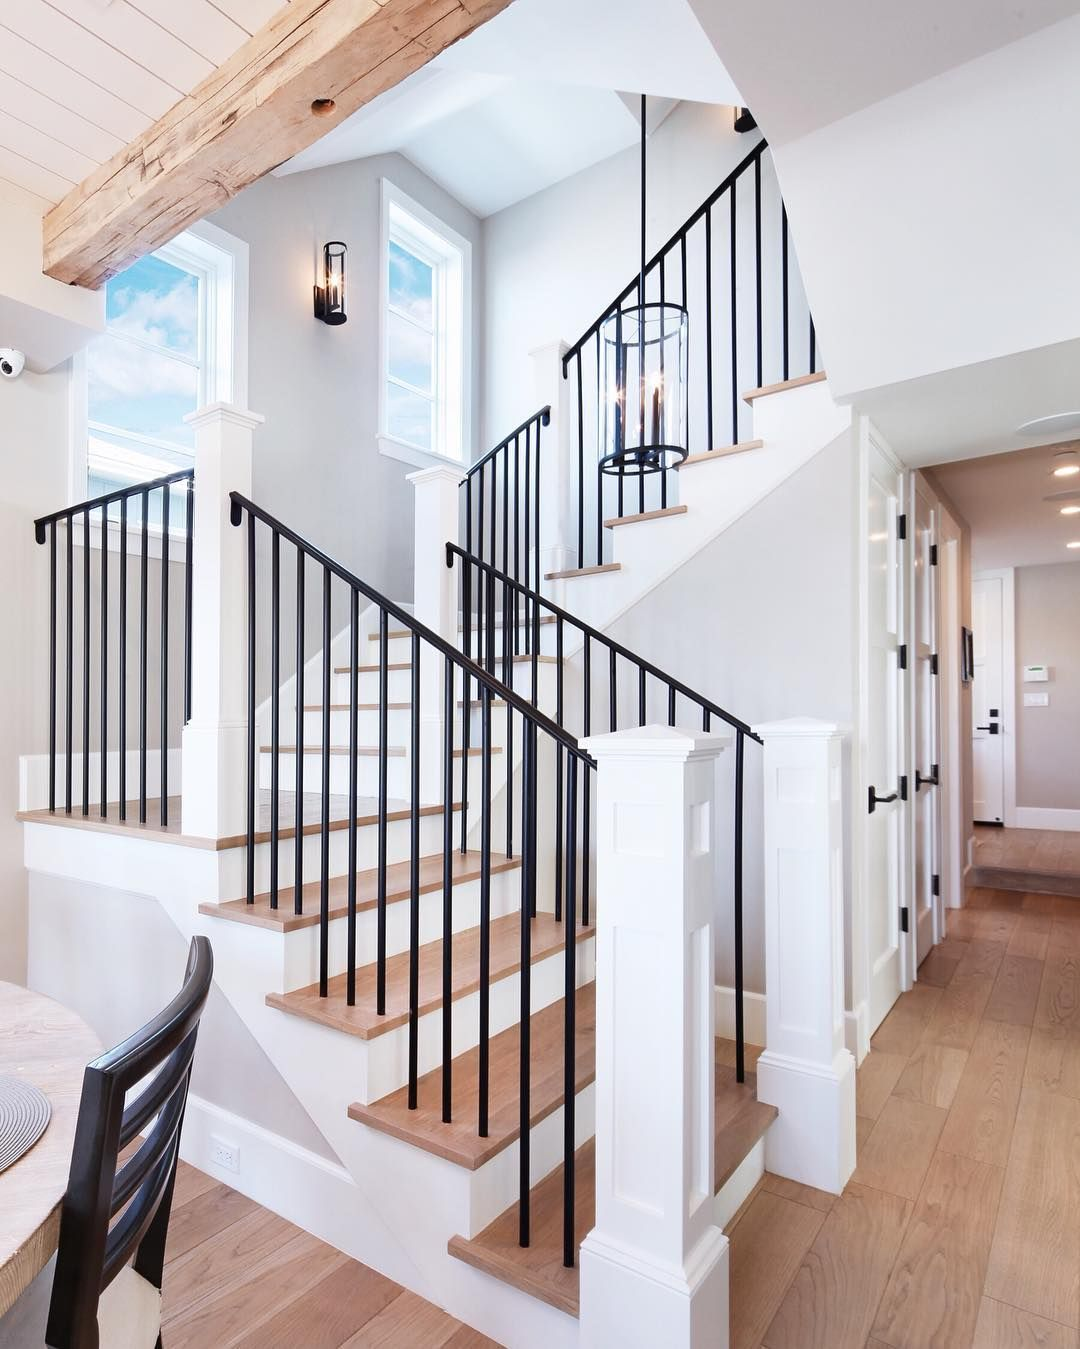 Top 70 Best Stair Railing Ideas: Industrial With A Mix Of Comfort For This Wrought Iron